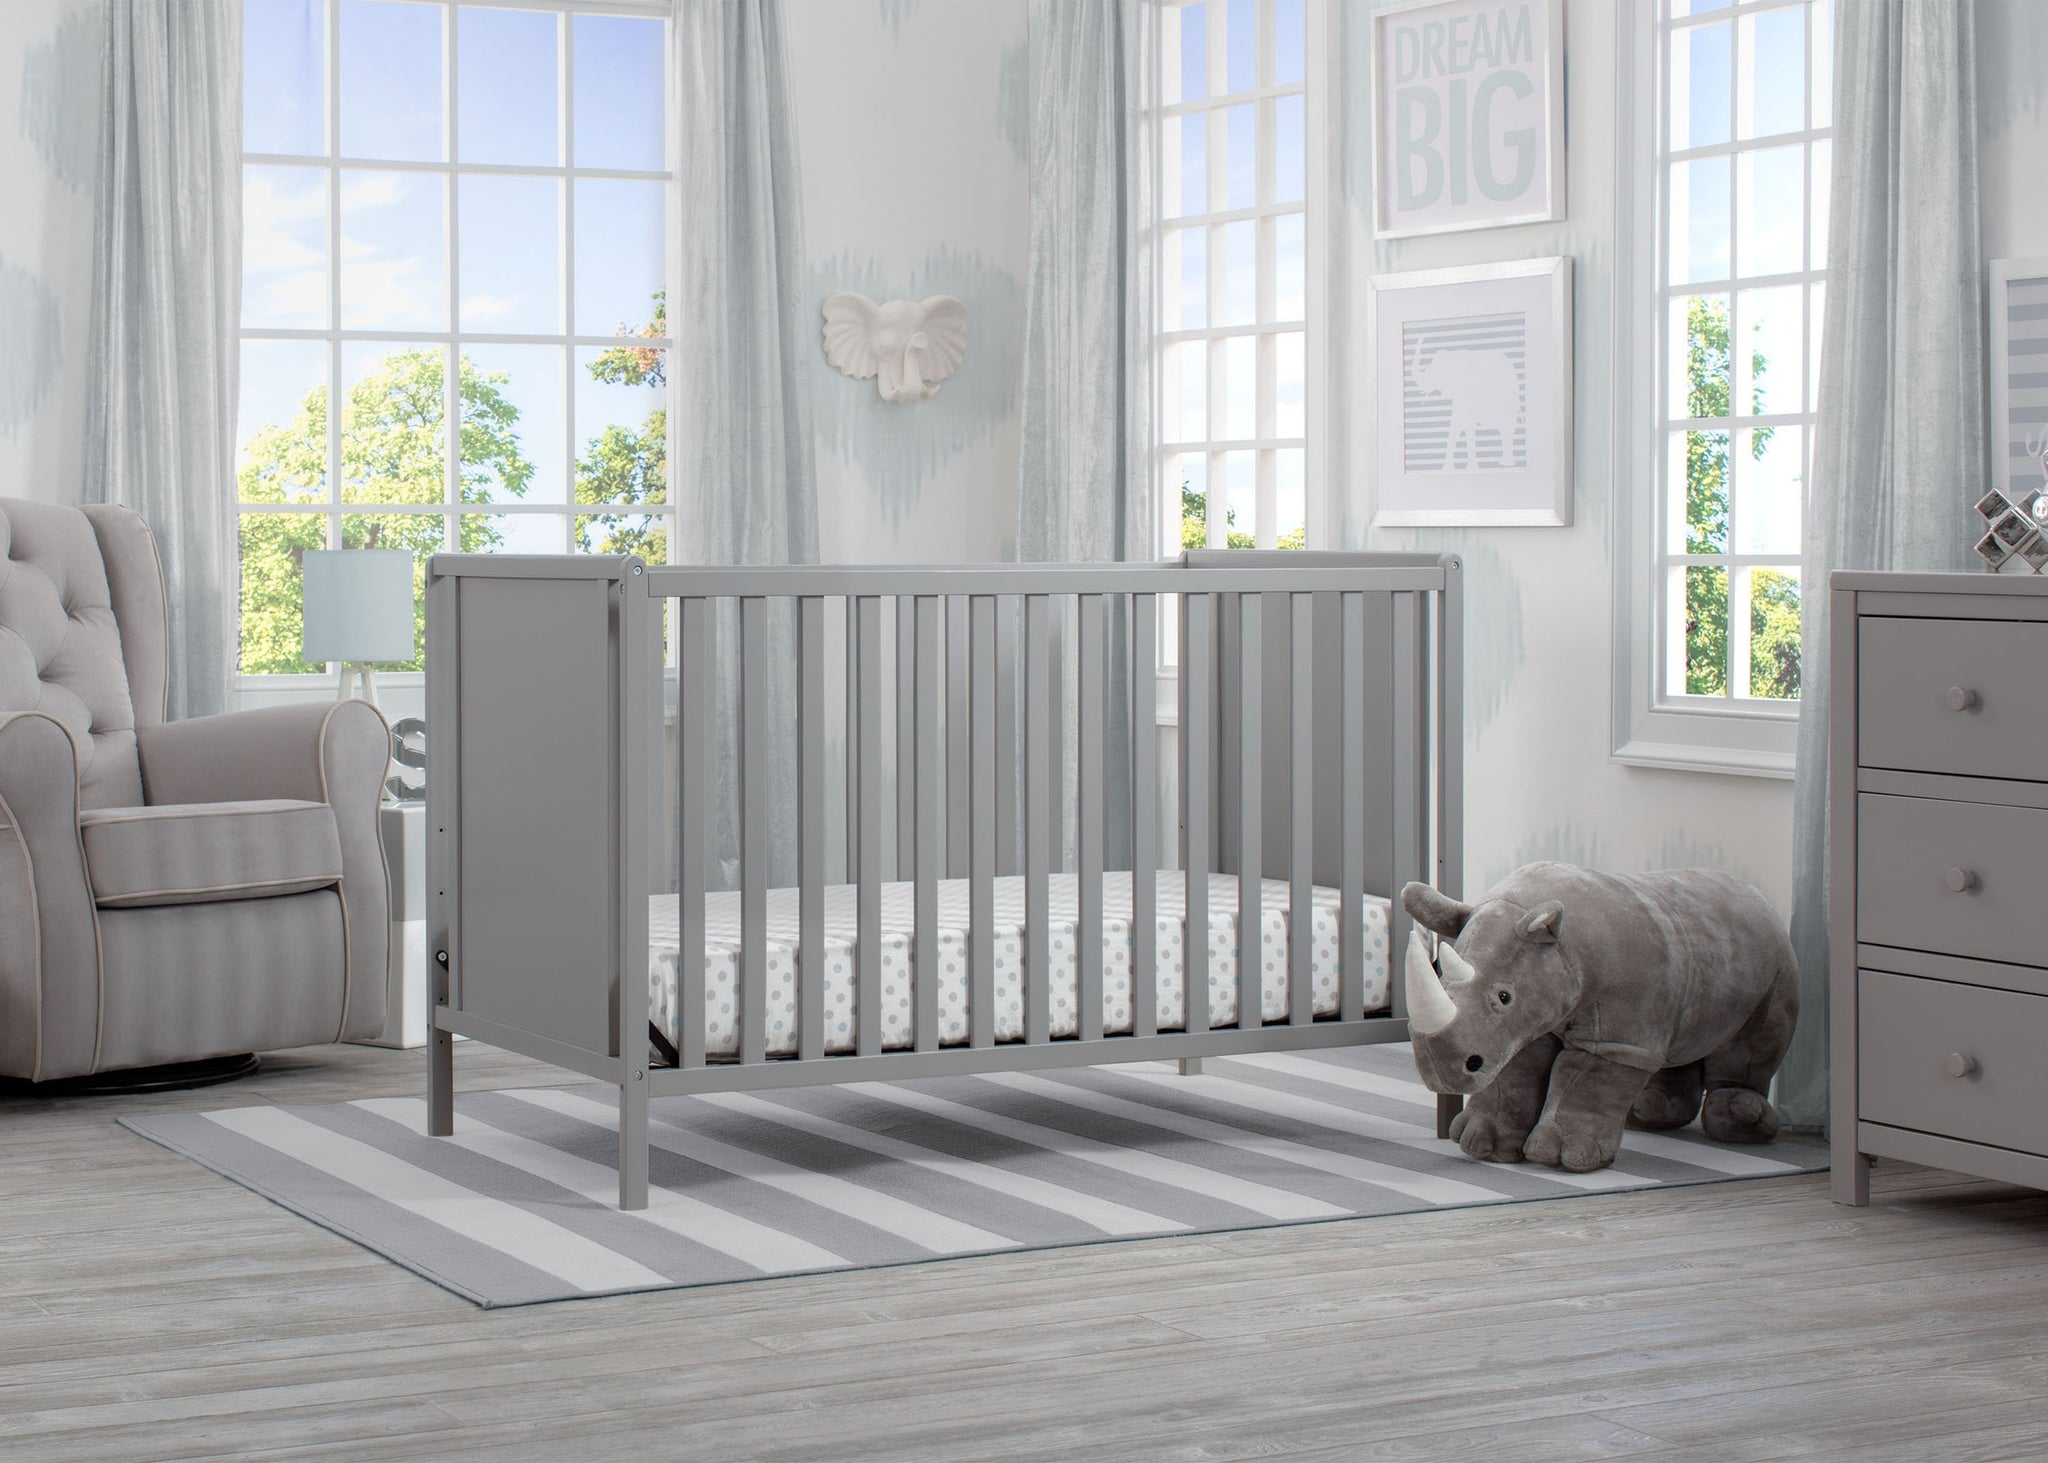 Delta Children Grey (026) Heartland Classic 4-in-1 Convertible Crib, Room, a1a